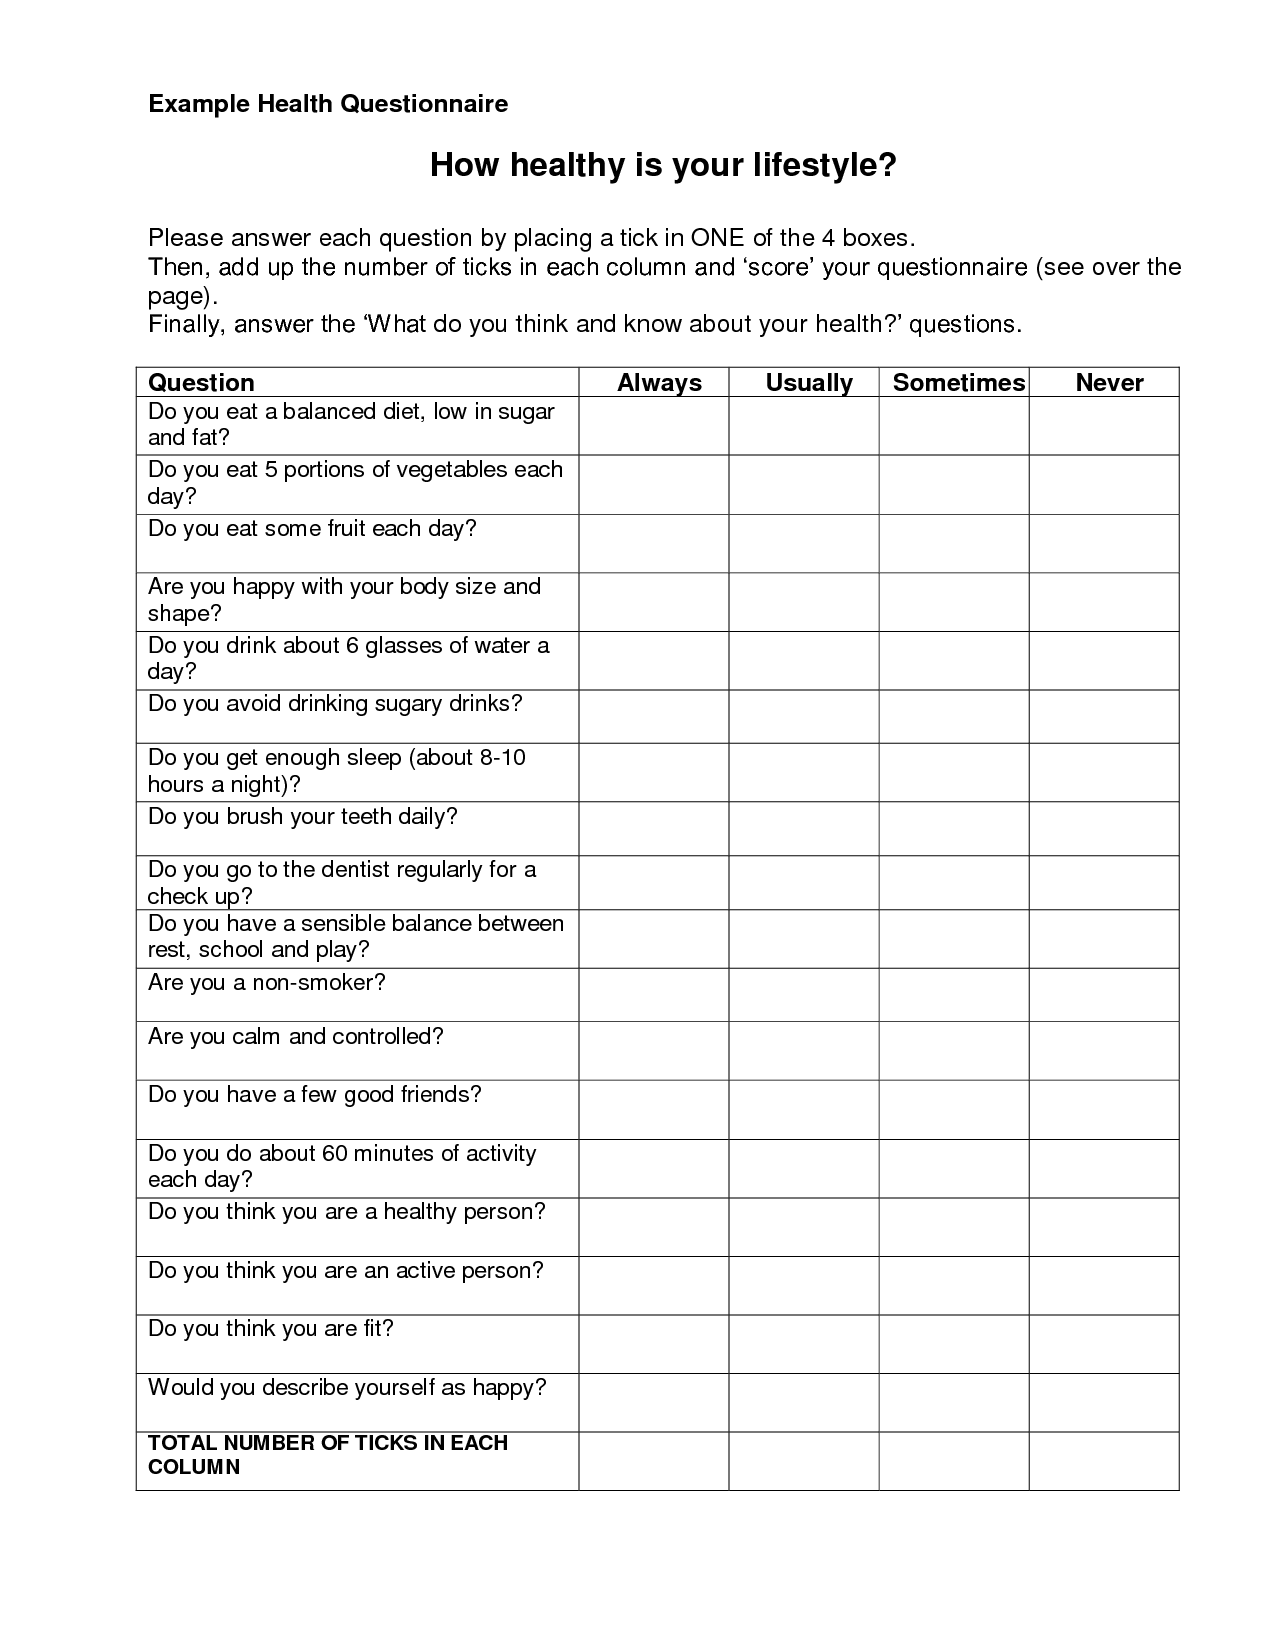 Example Of A Health Screening Questionnaire For Fitness